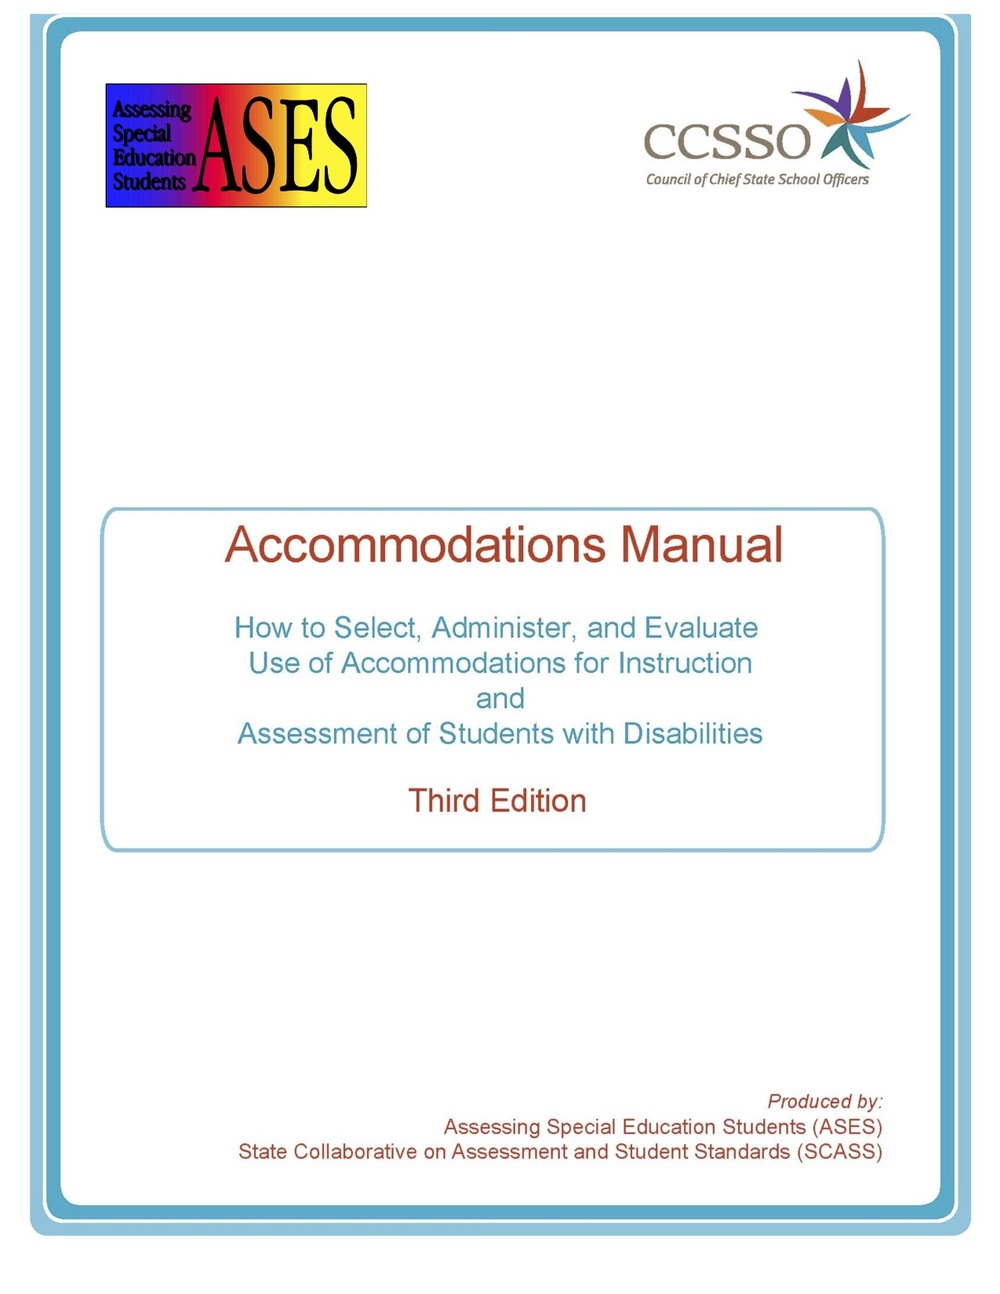 ASES Accommodations Manual - 3rd edition - 2011 - 8-30-12.jpg